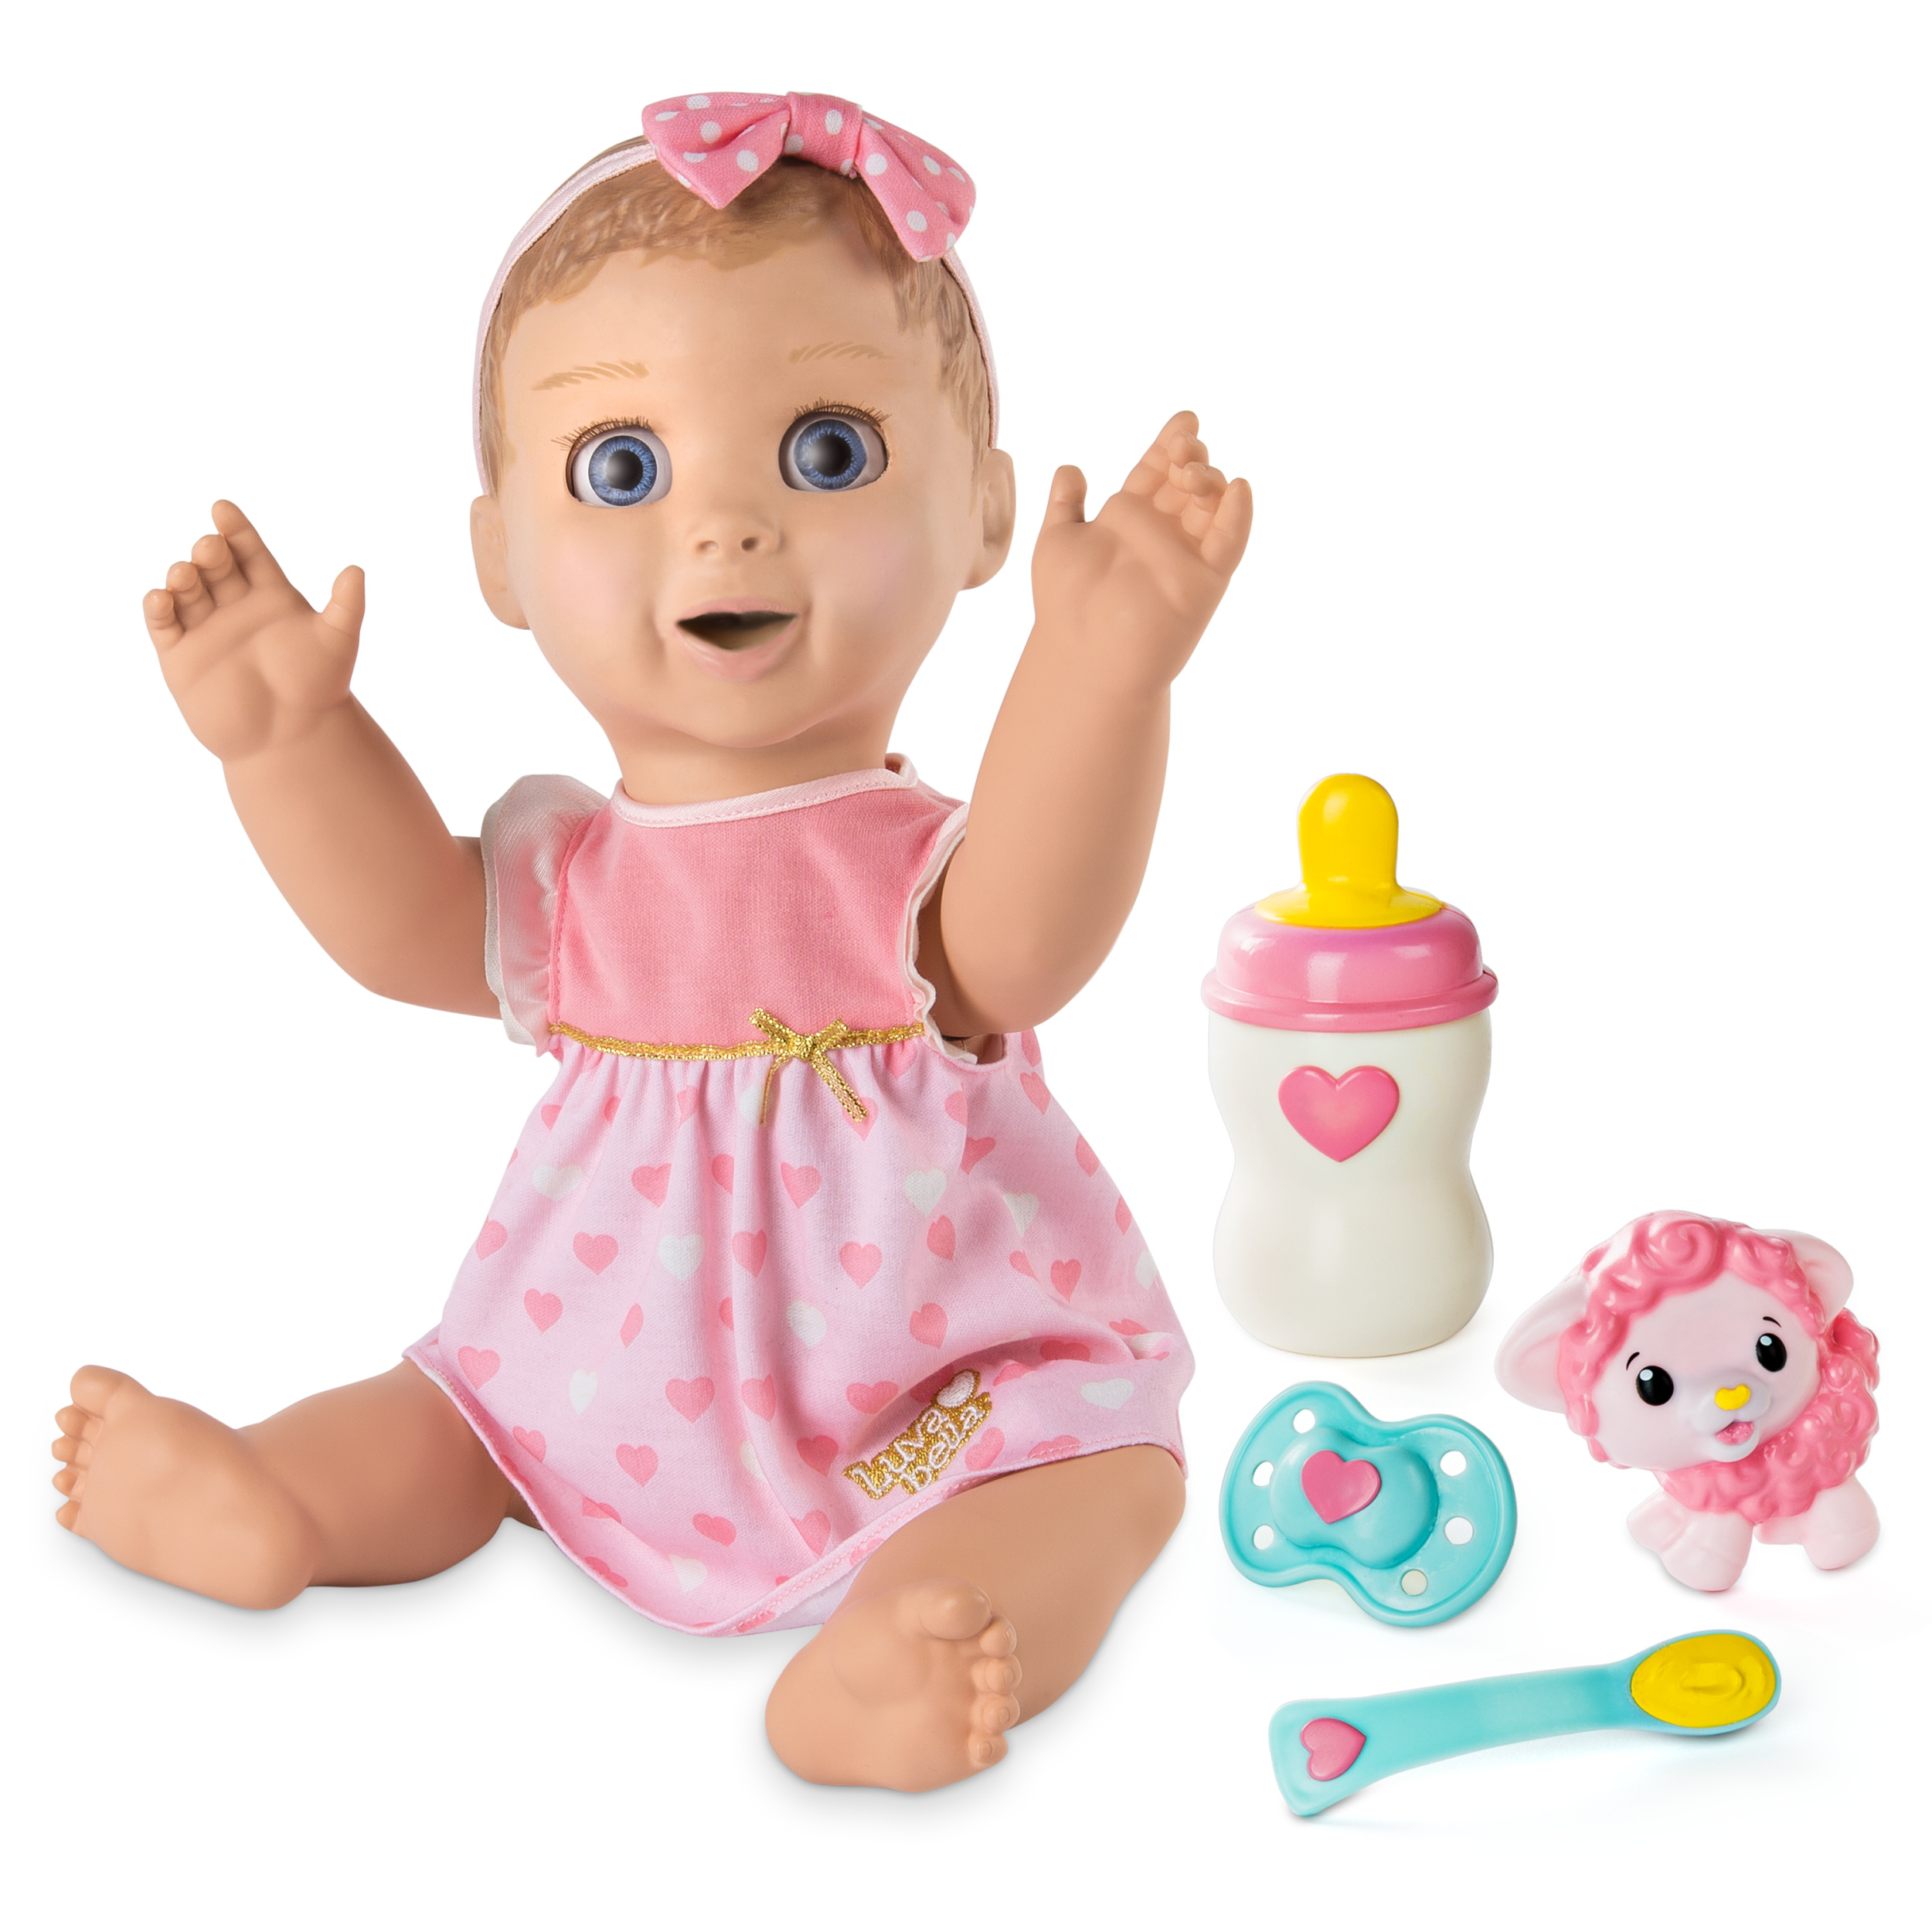 Luvabella ‐ Blonde Hair ‐ Responsive Baby Doll with Realistic Expressions and Movement